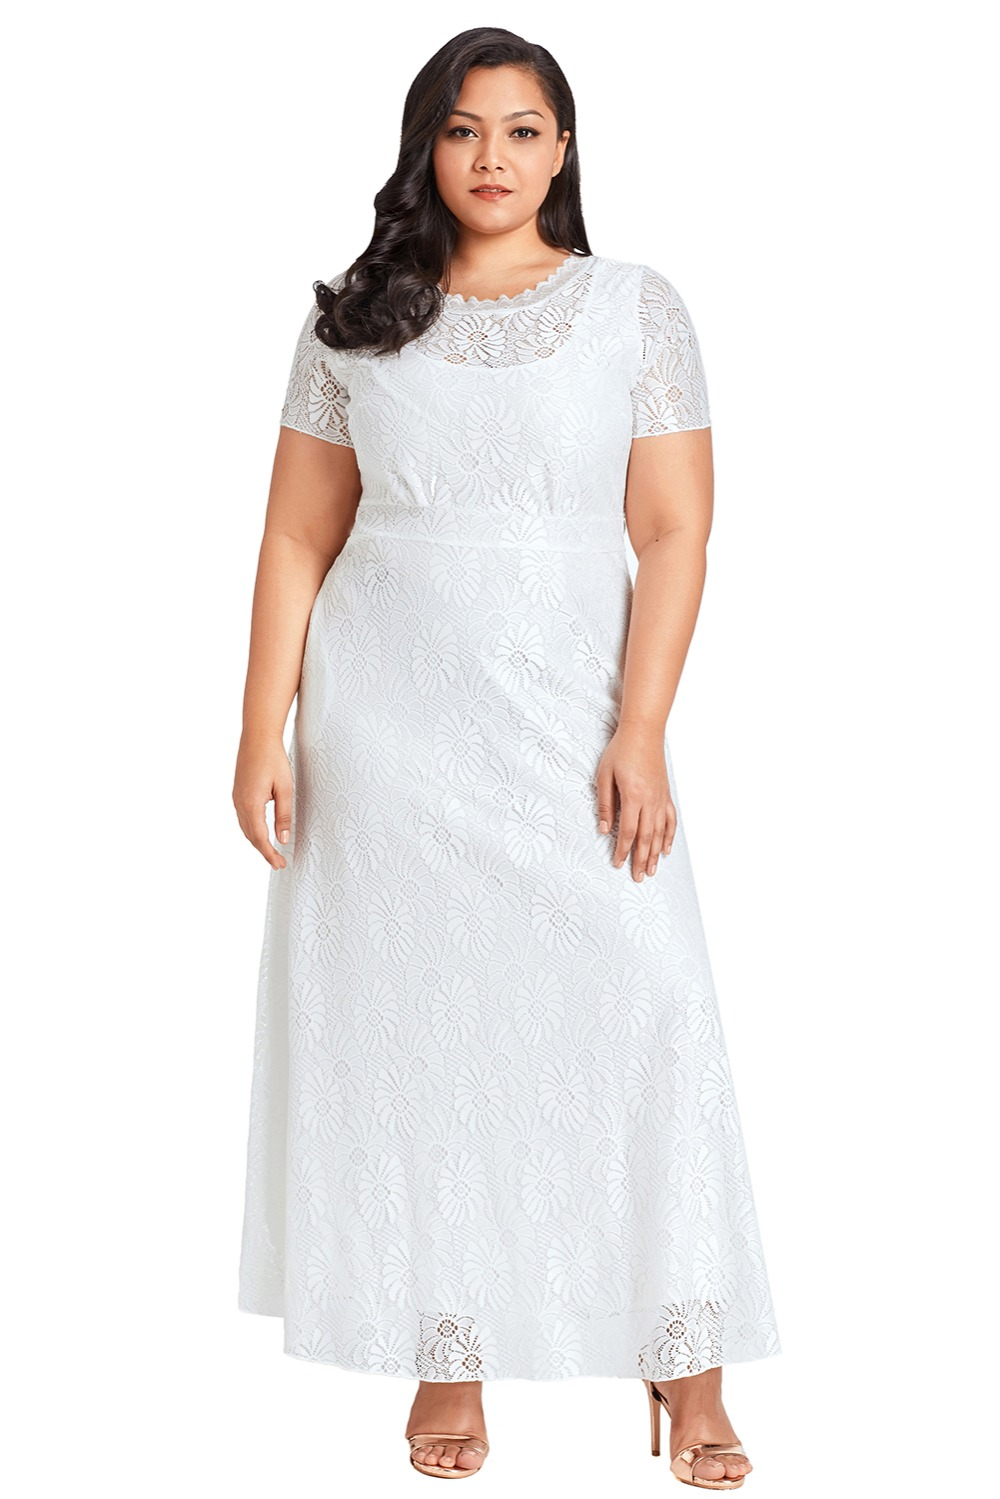 White-Plus-Size-Lace-Party-Gown-LC61917-1-3